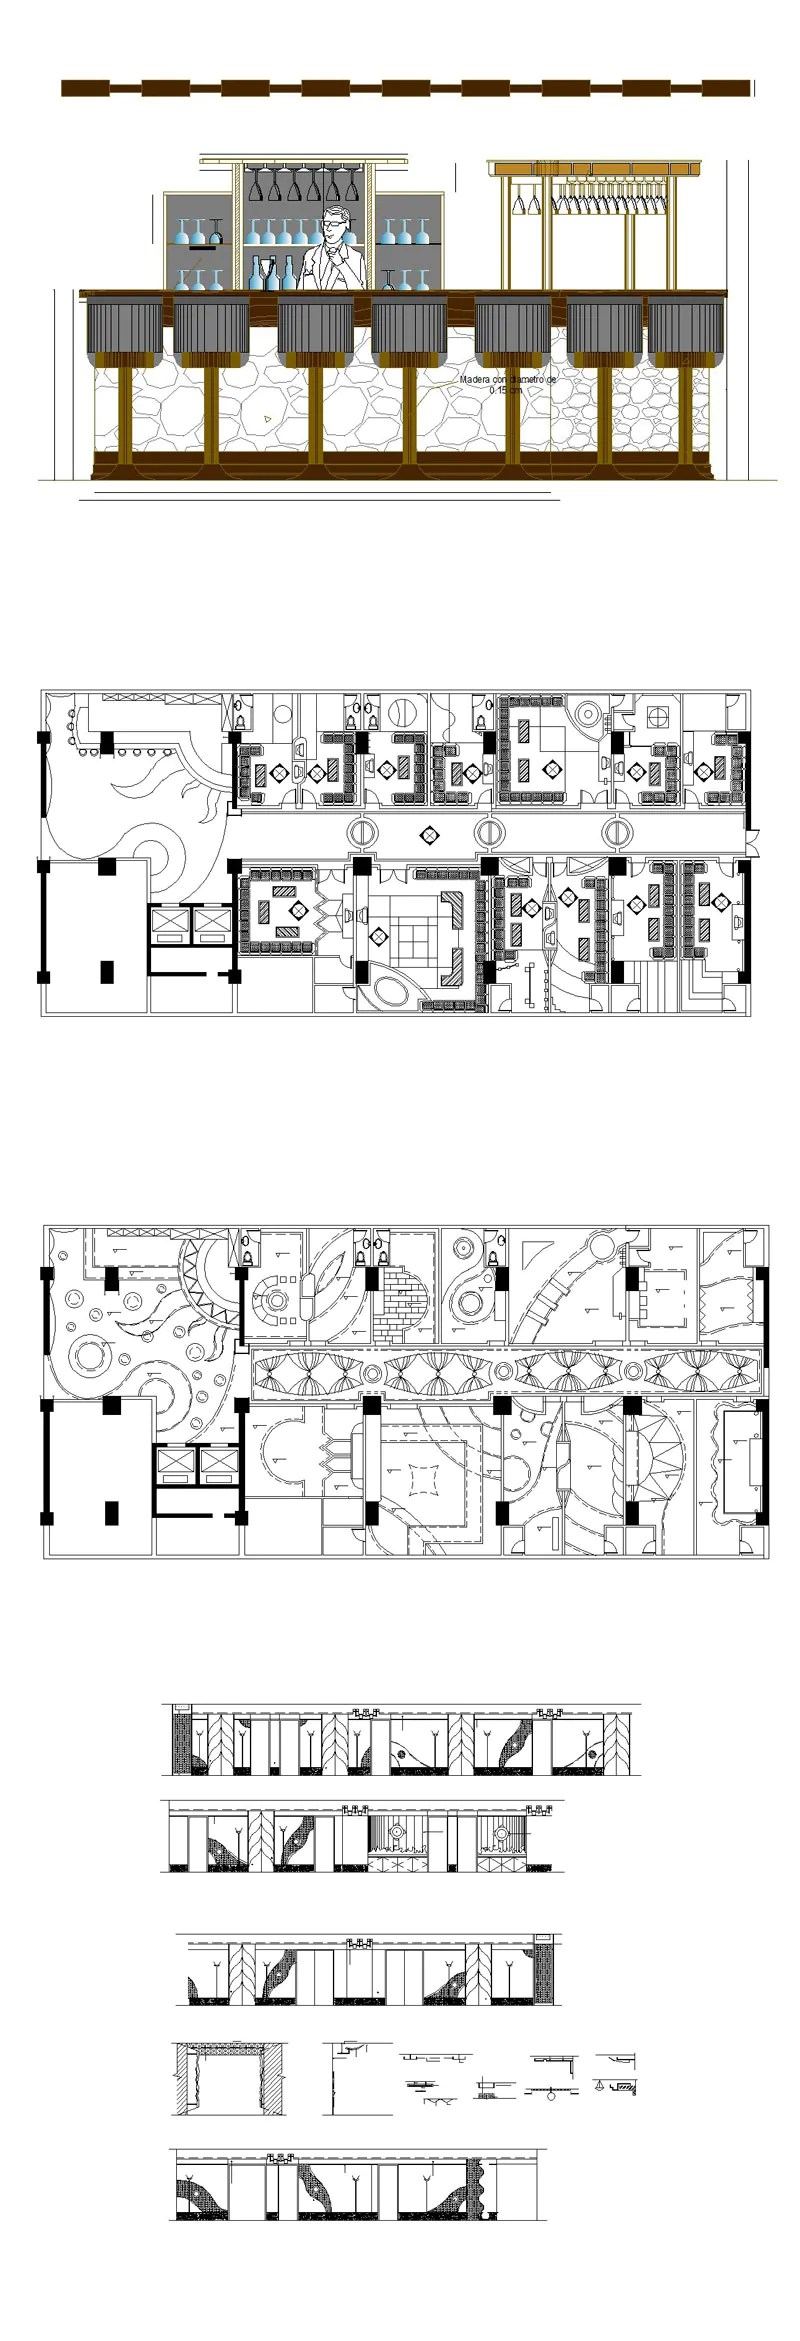 Autocad Blocks Pub Bar Restaurant Cad Design Drawings V 1 Pub Bar Restaurant Store Design Autocad Blocks Drawings Cad Details Elevation